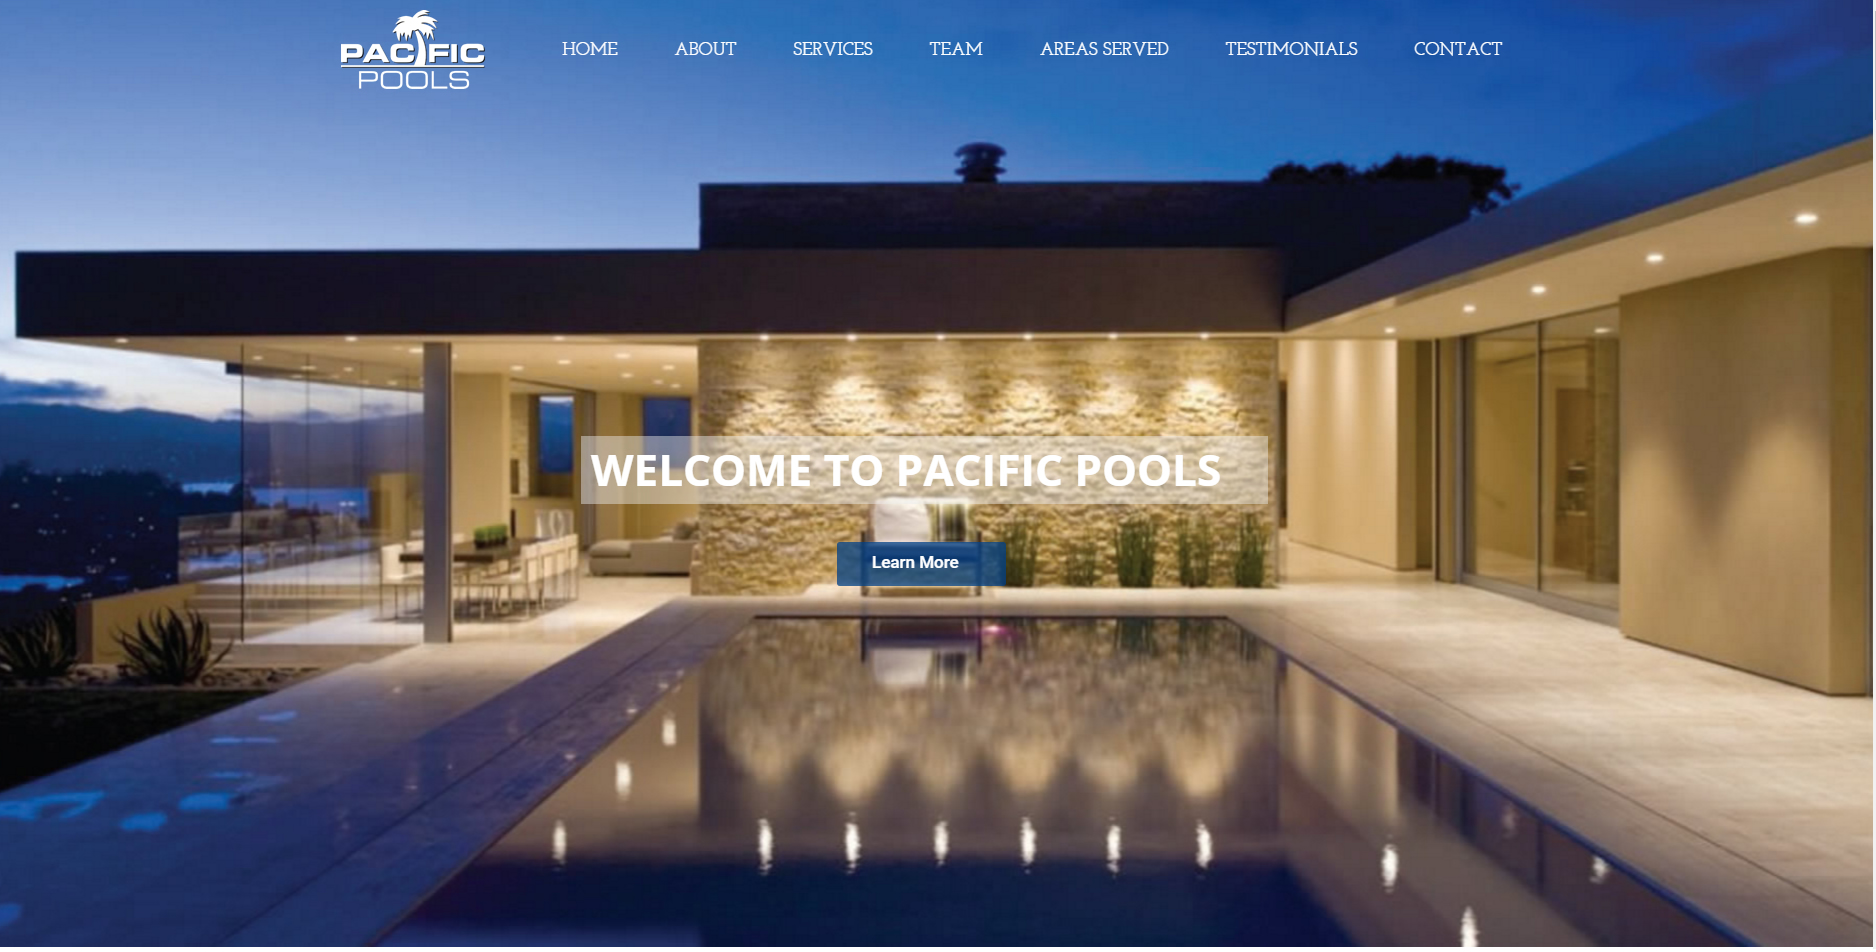 Pacific pools site rebuild single page parallax site and for Pacific pools